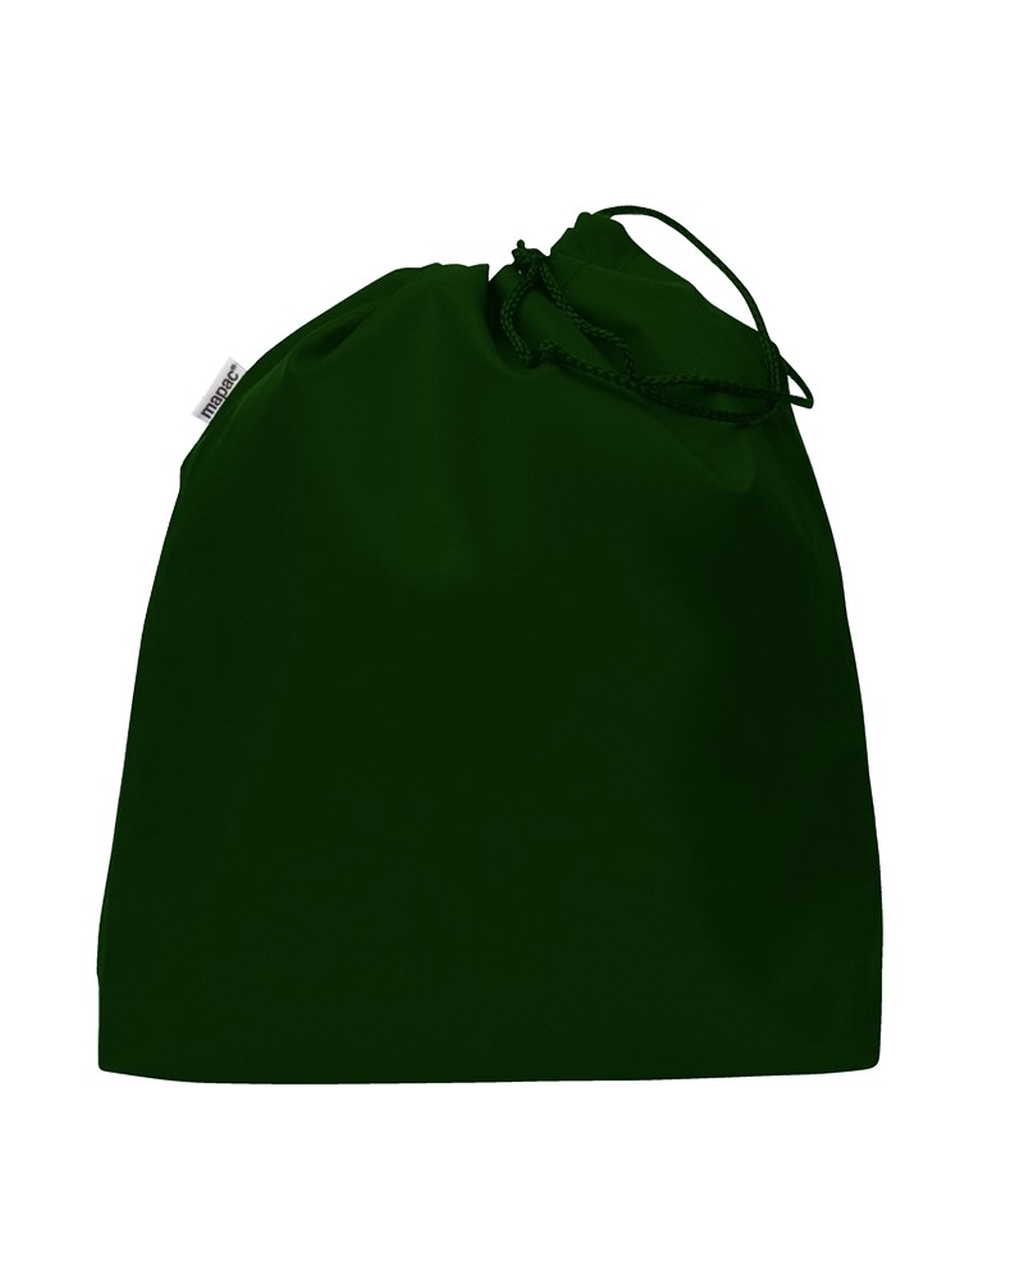 Back Bags 350 x 370mm - Dark Green